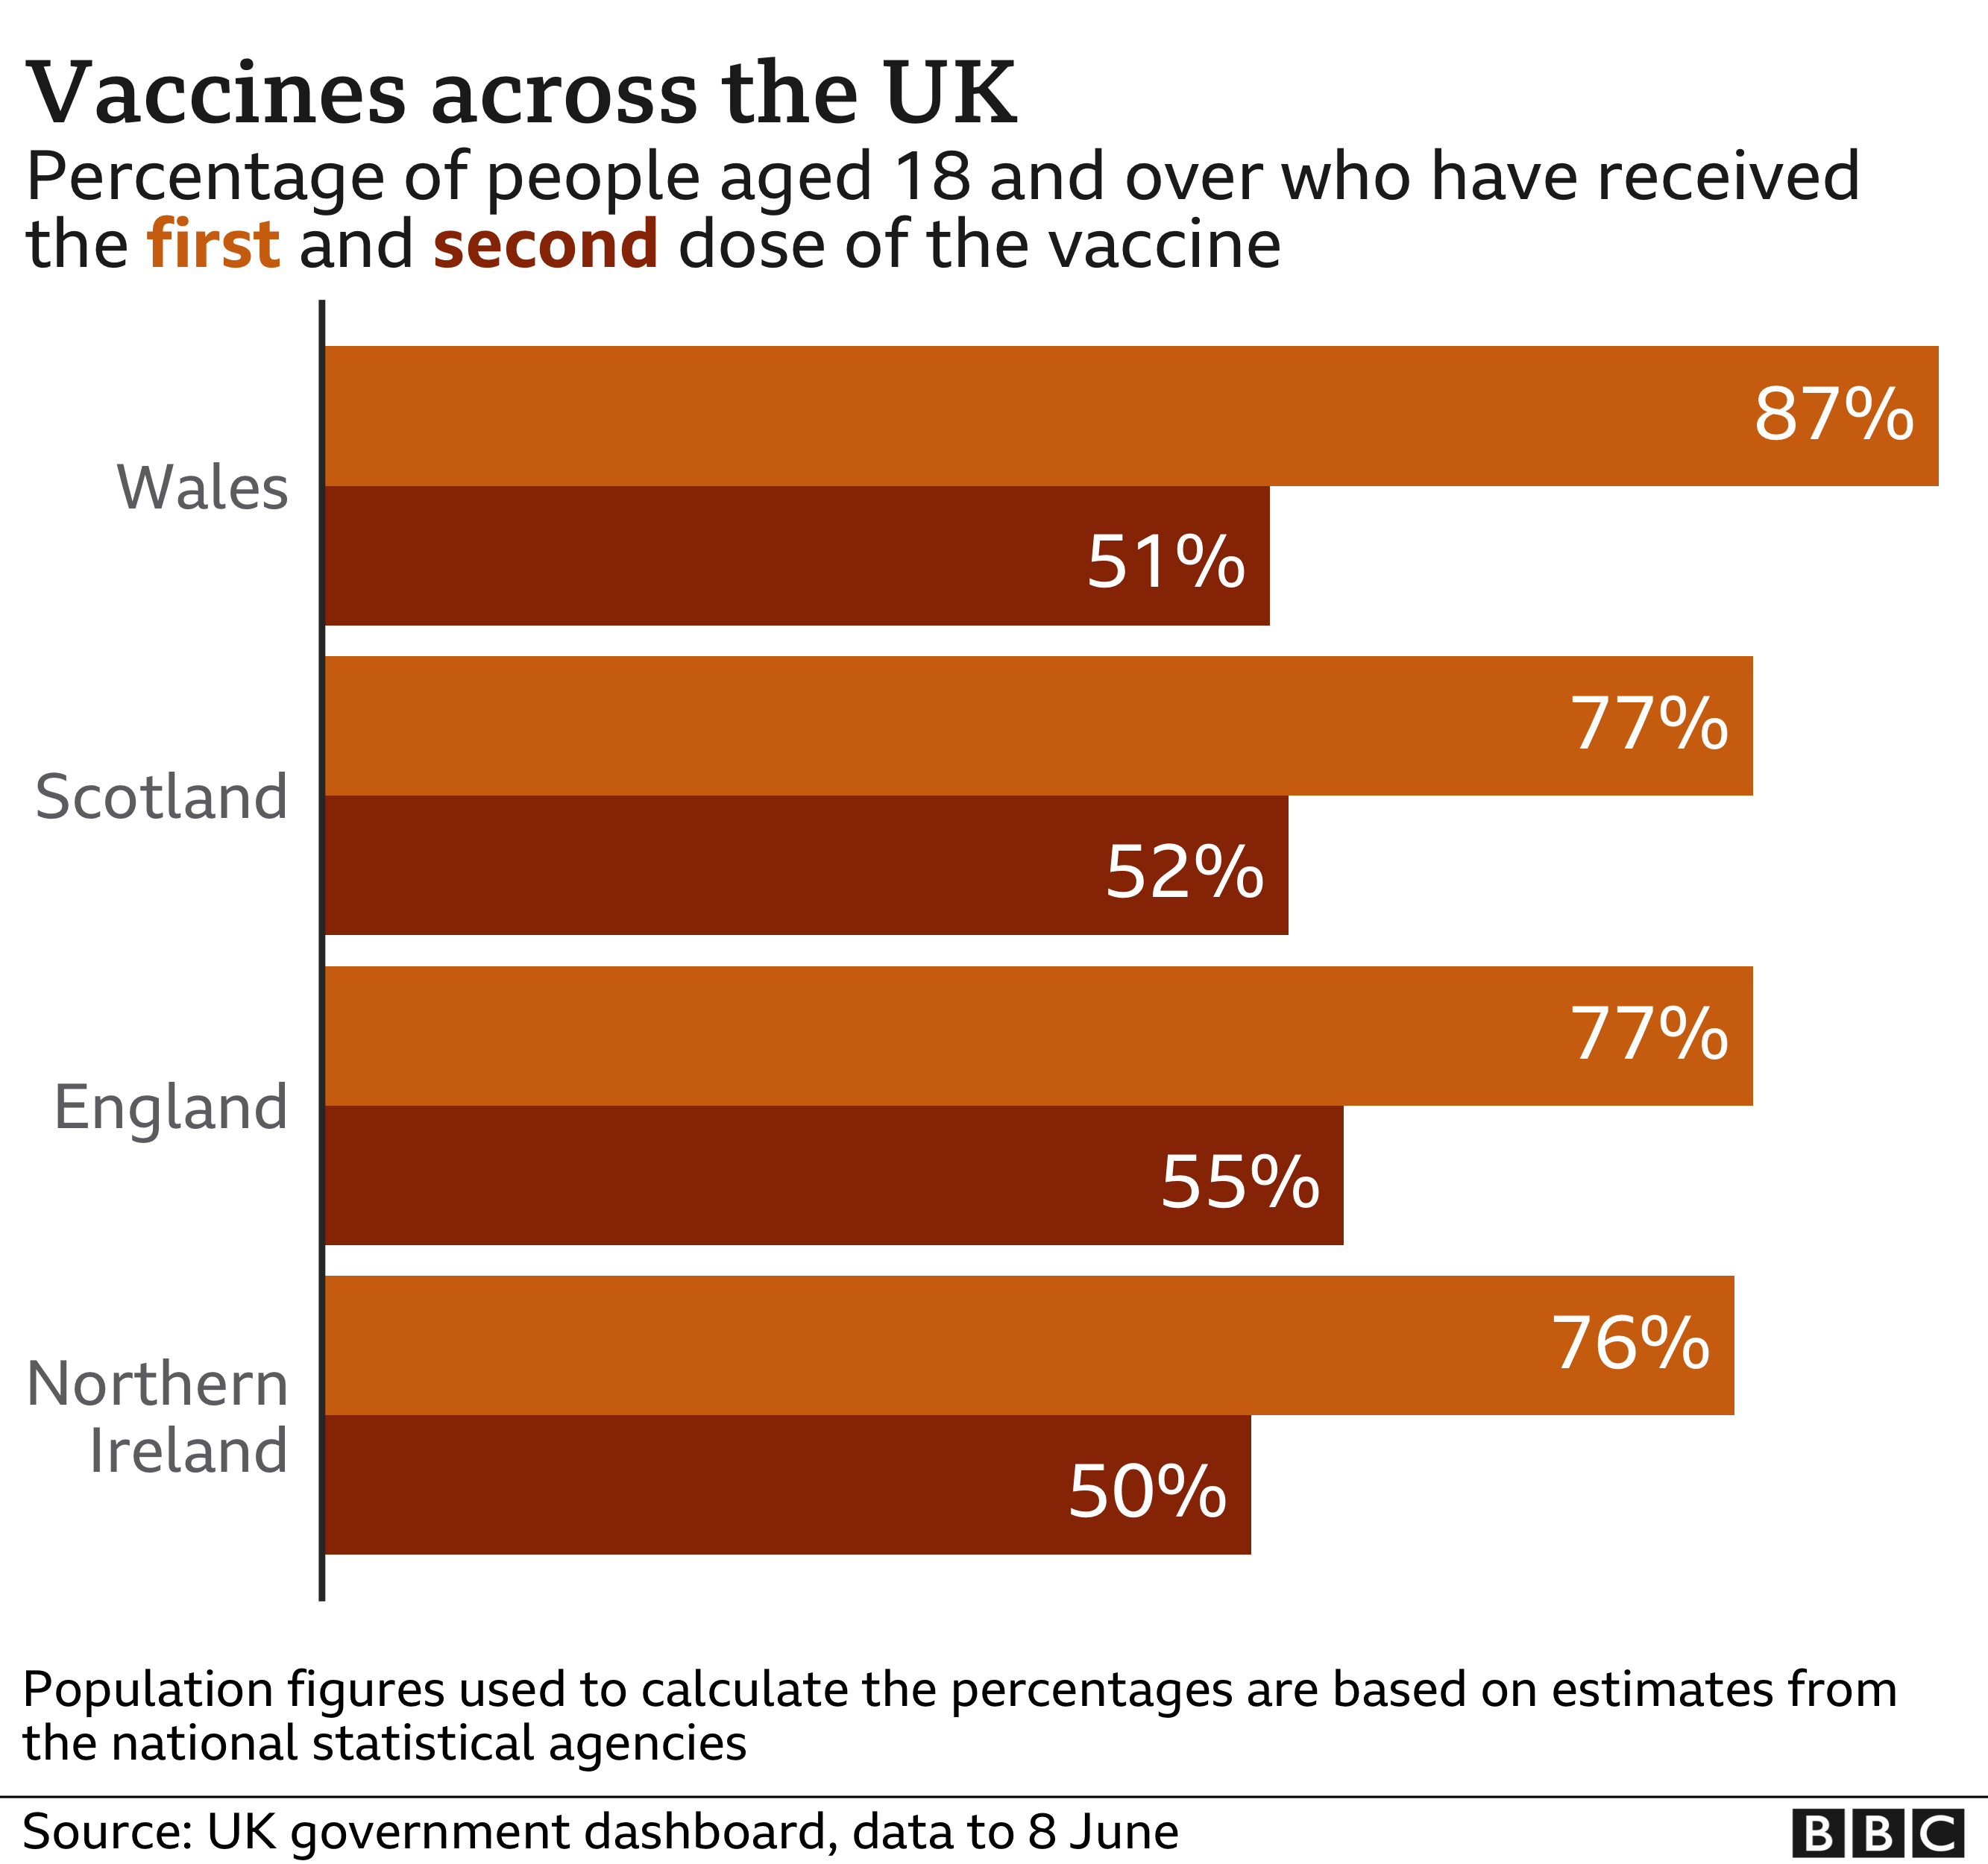 Chart of vaccine take up by UK nation - 87% of those aged 18 and over in Wales have had at least one dose, compared with 76% in Northern Ireland